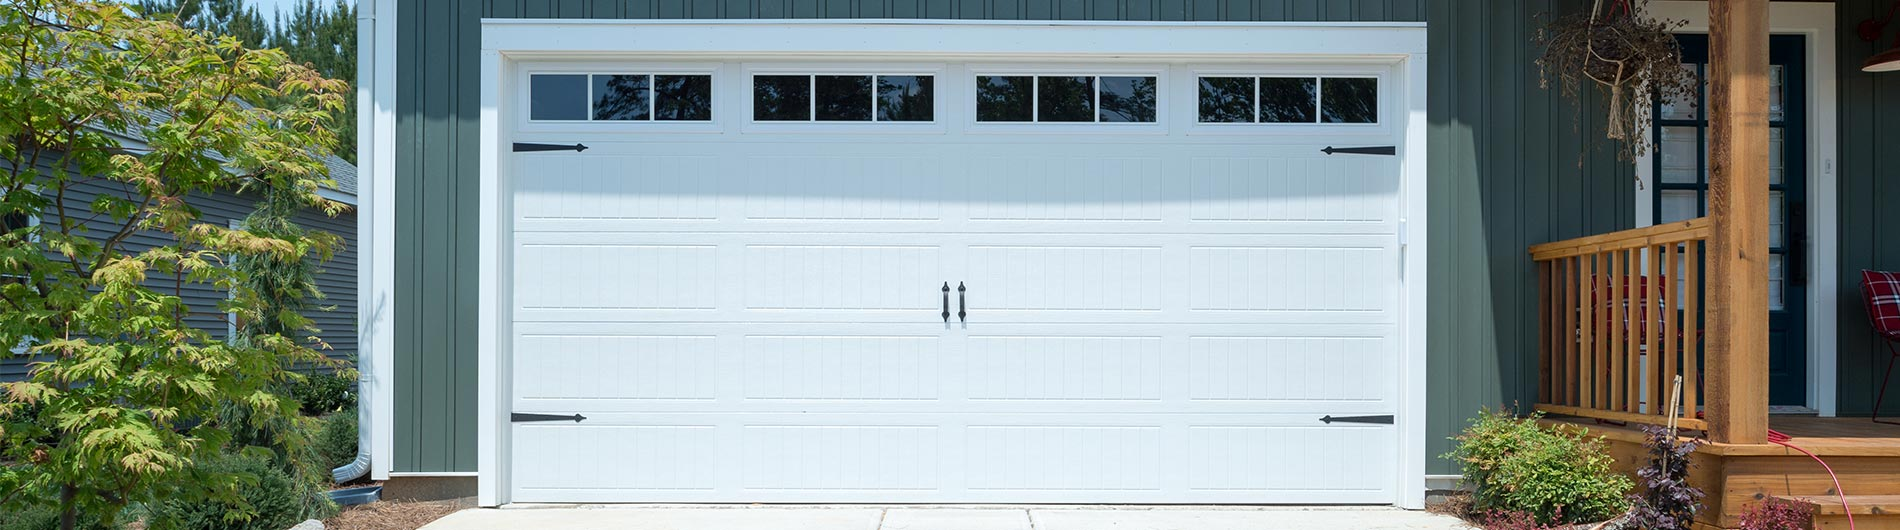 9100 steel garage doors - Garage Door With Door